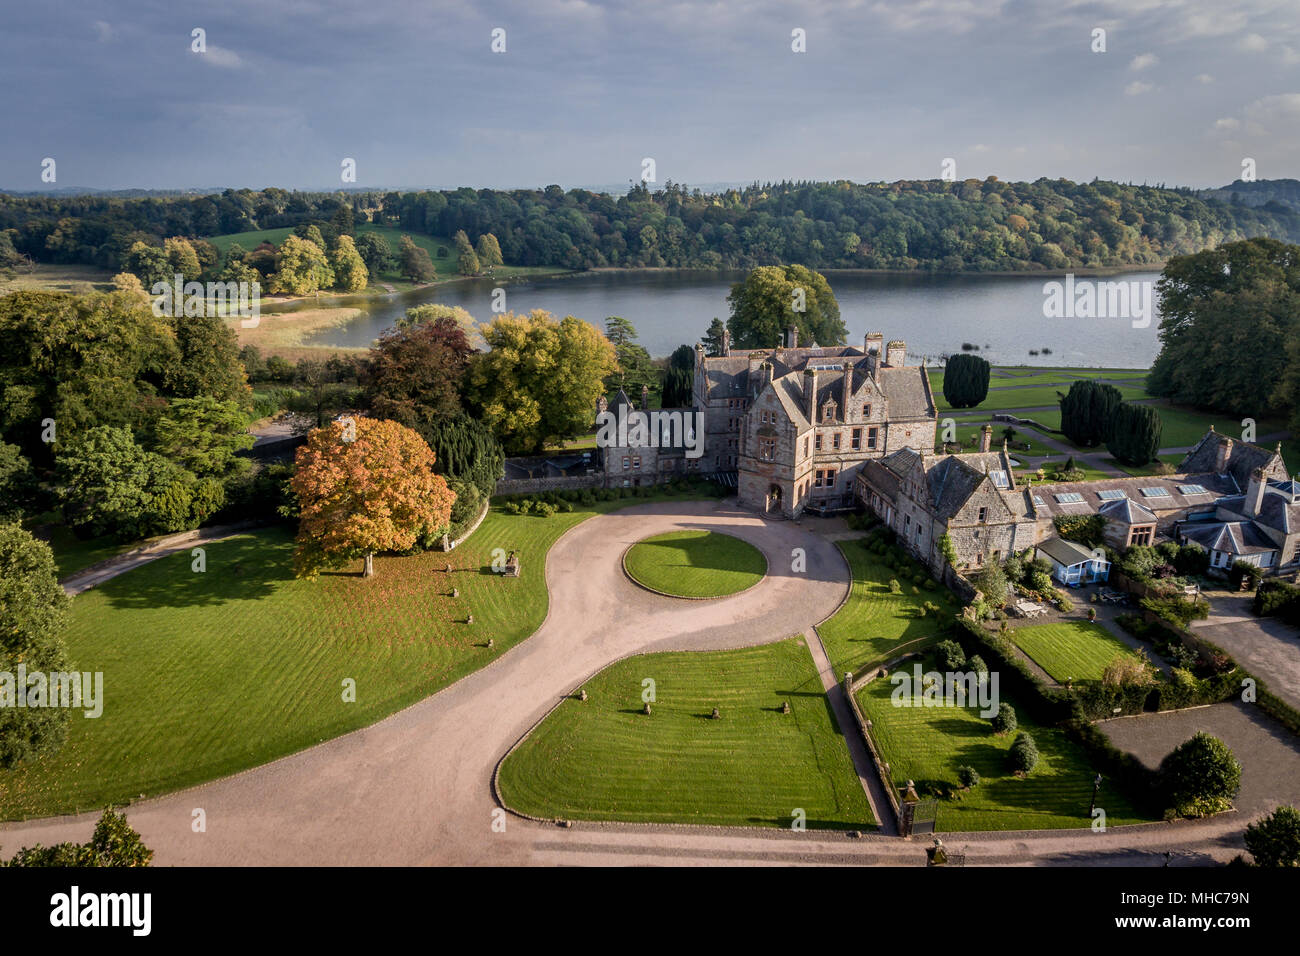 Aerial View of the gardens and lake of Castle Leslie Estate, Co Monaghan, Ireland. - Stock Image